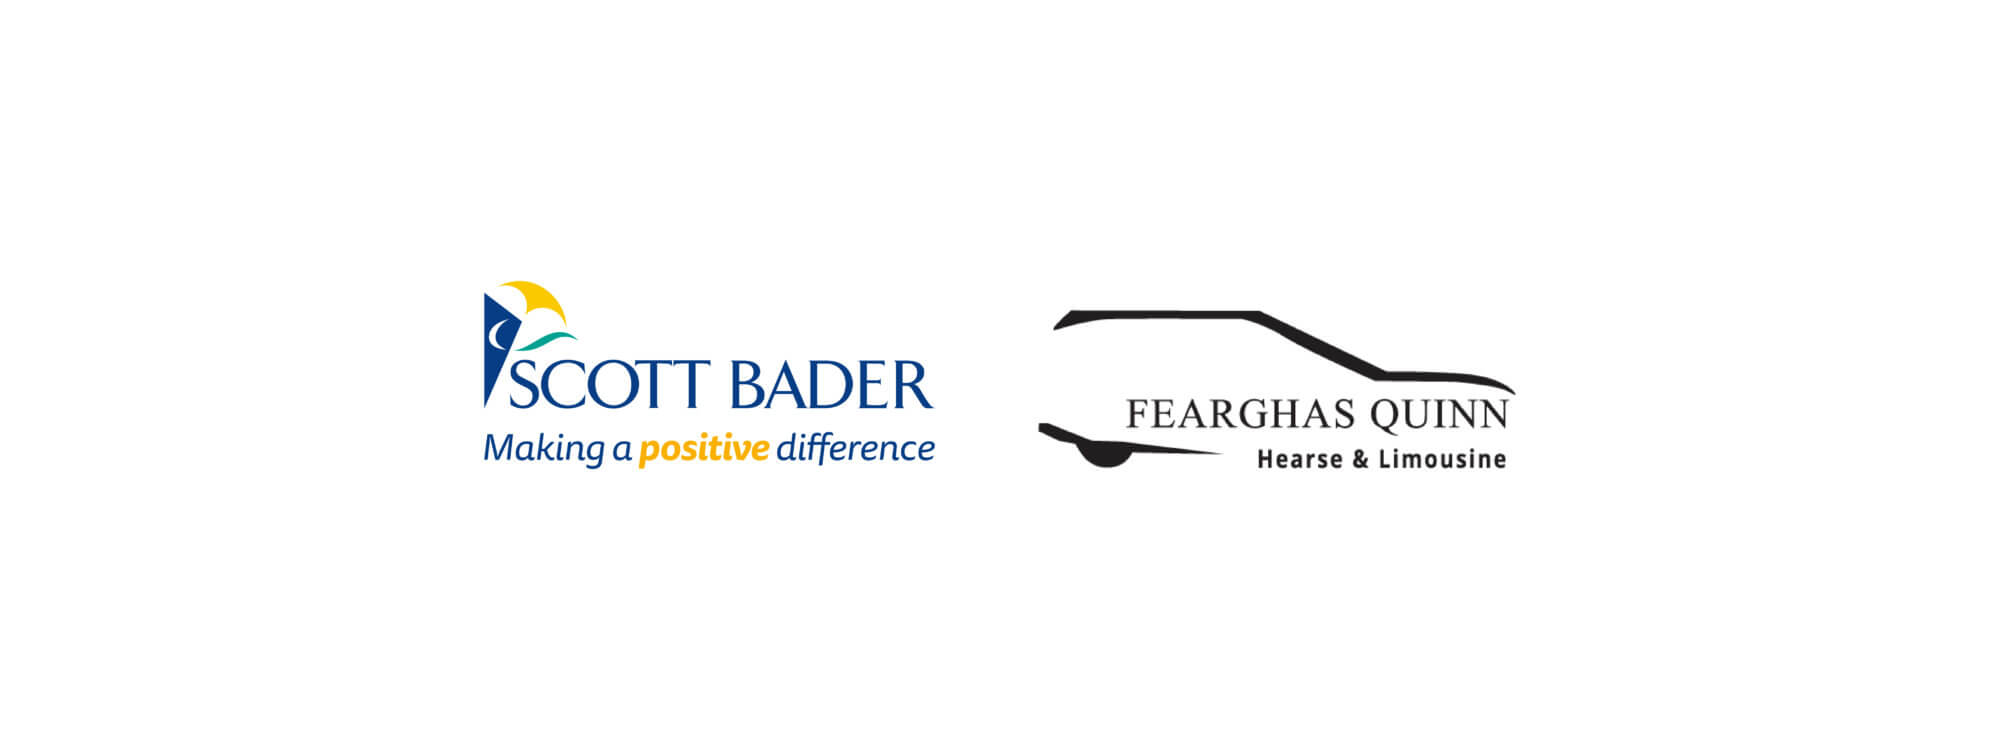 Fearghas Quinn Hearse & Limousine manufacture vehicles using Scott Bader resins, gelcoats and adhesives